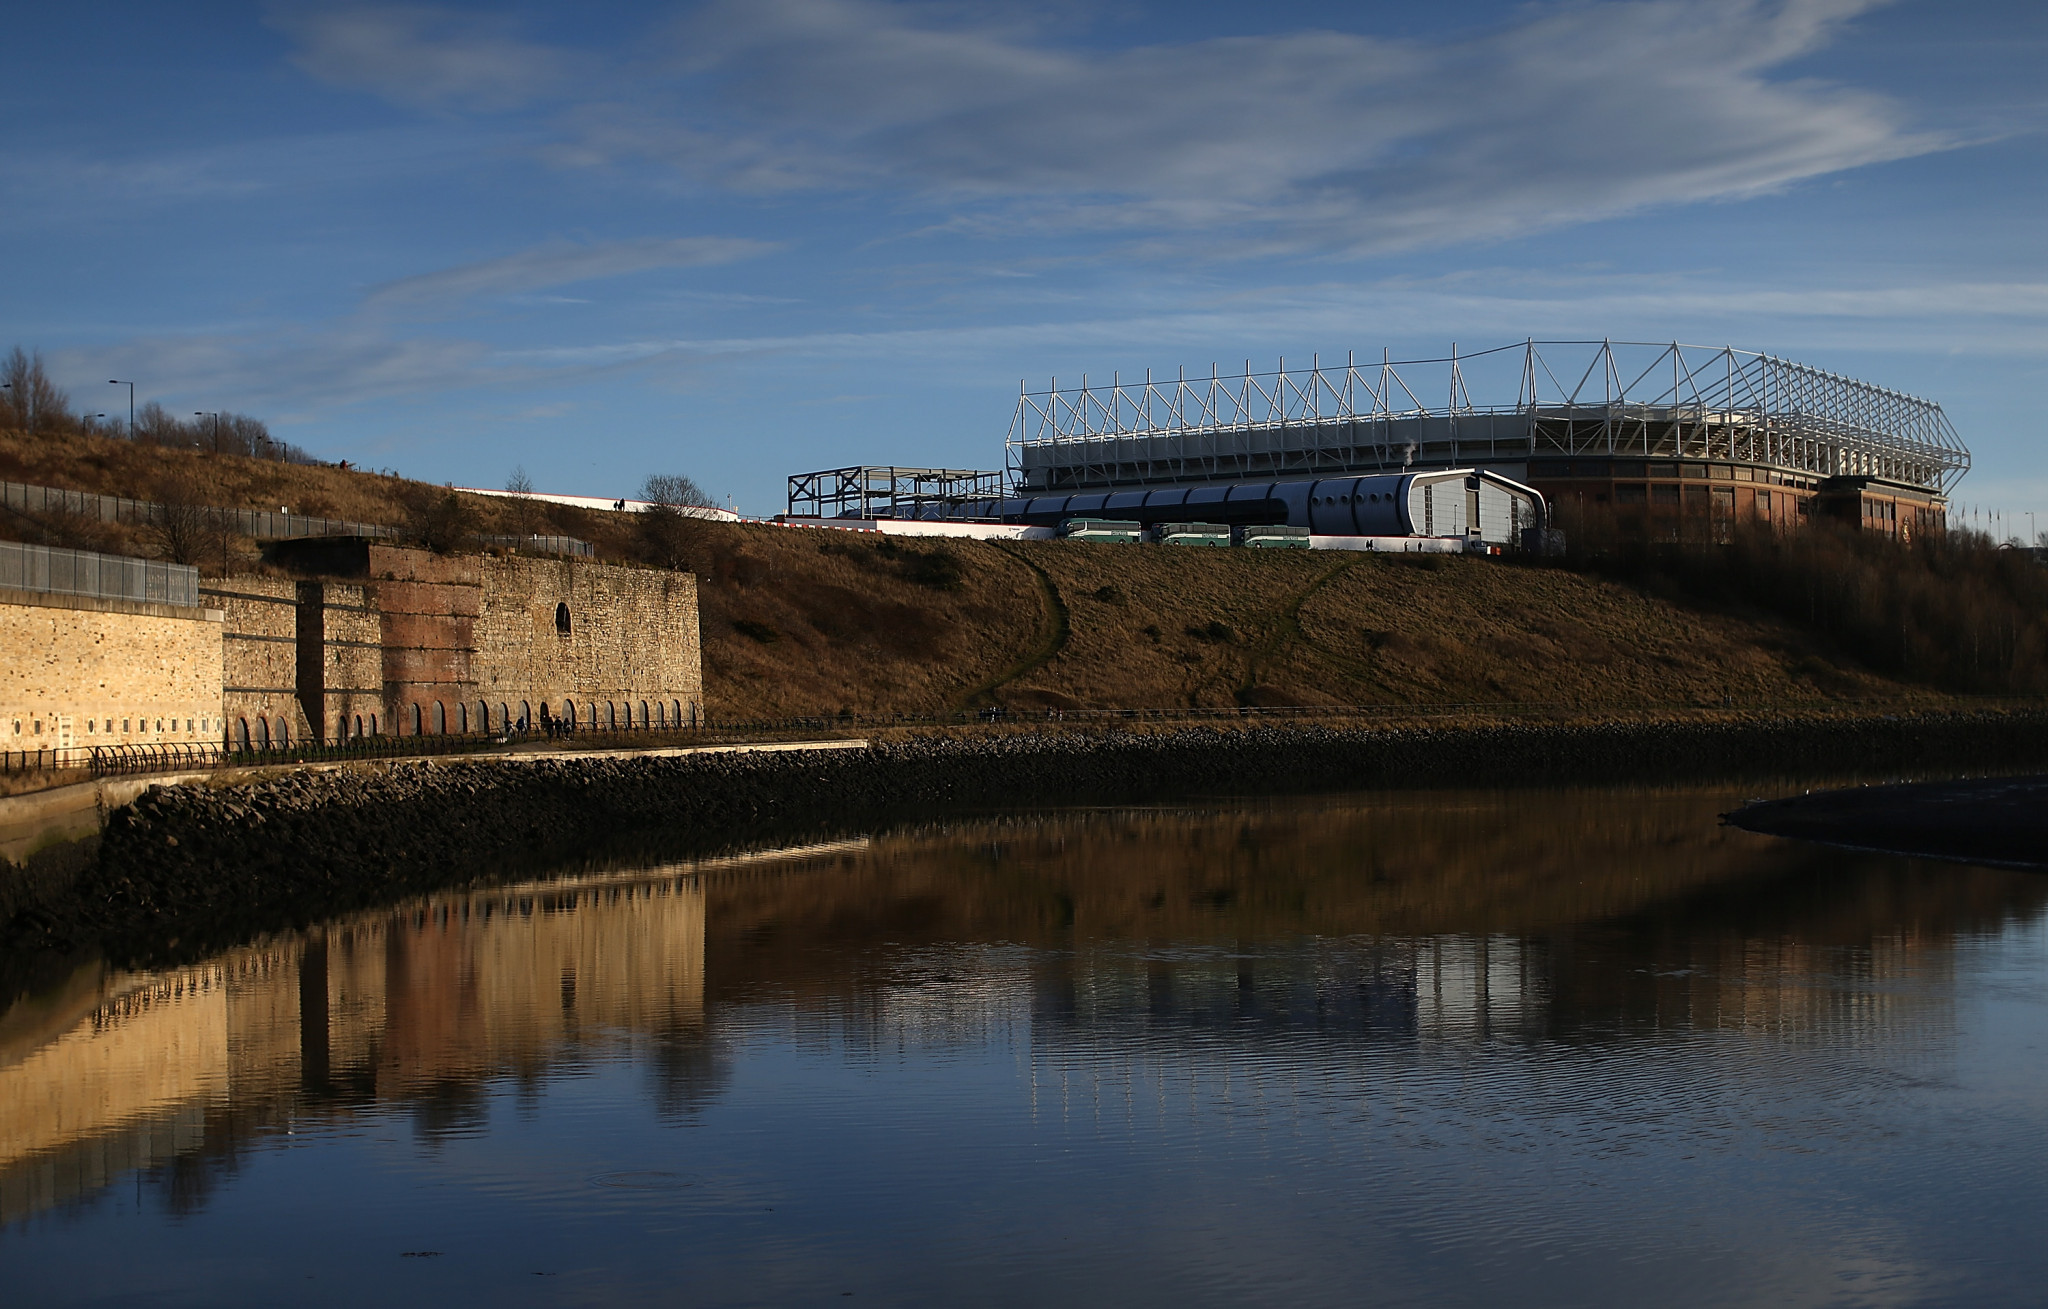 Plans for the north-east English city of Sunderland to bid for the Commonwealth Games by 2030 have been quietly dropped by the city council ©Getty Images